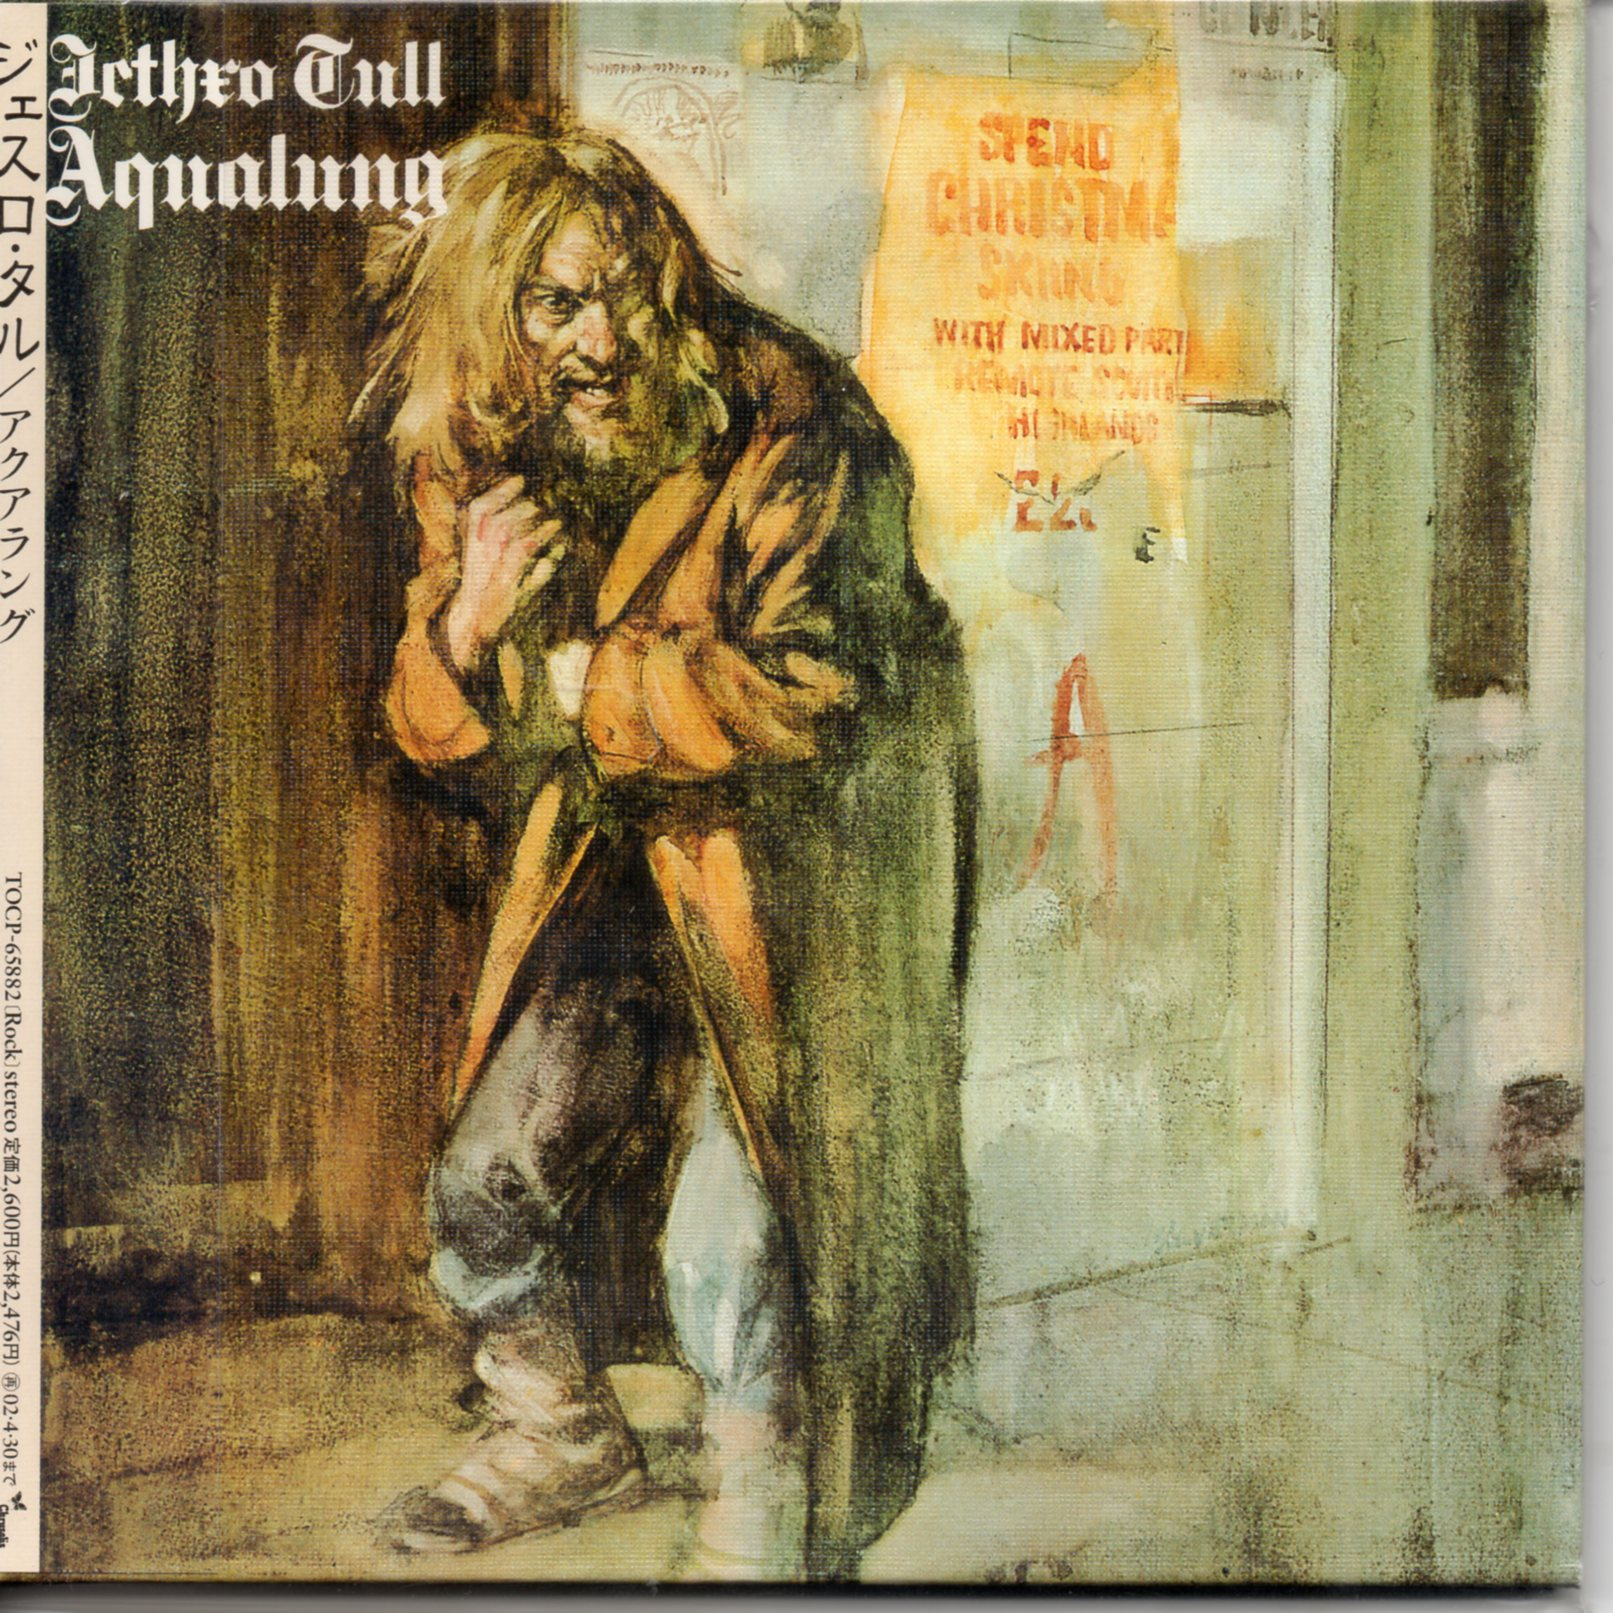 JETHRO TULL - Aqualung - Mini LP Japan - - CD